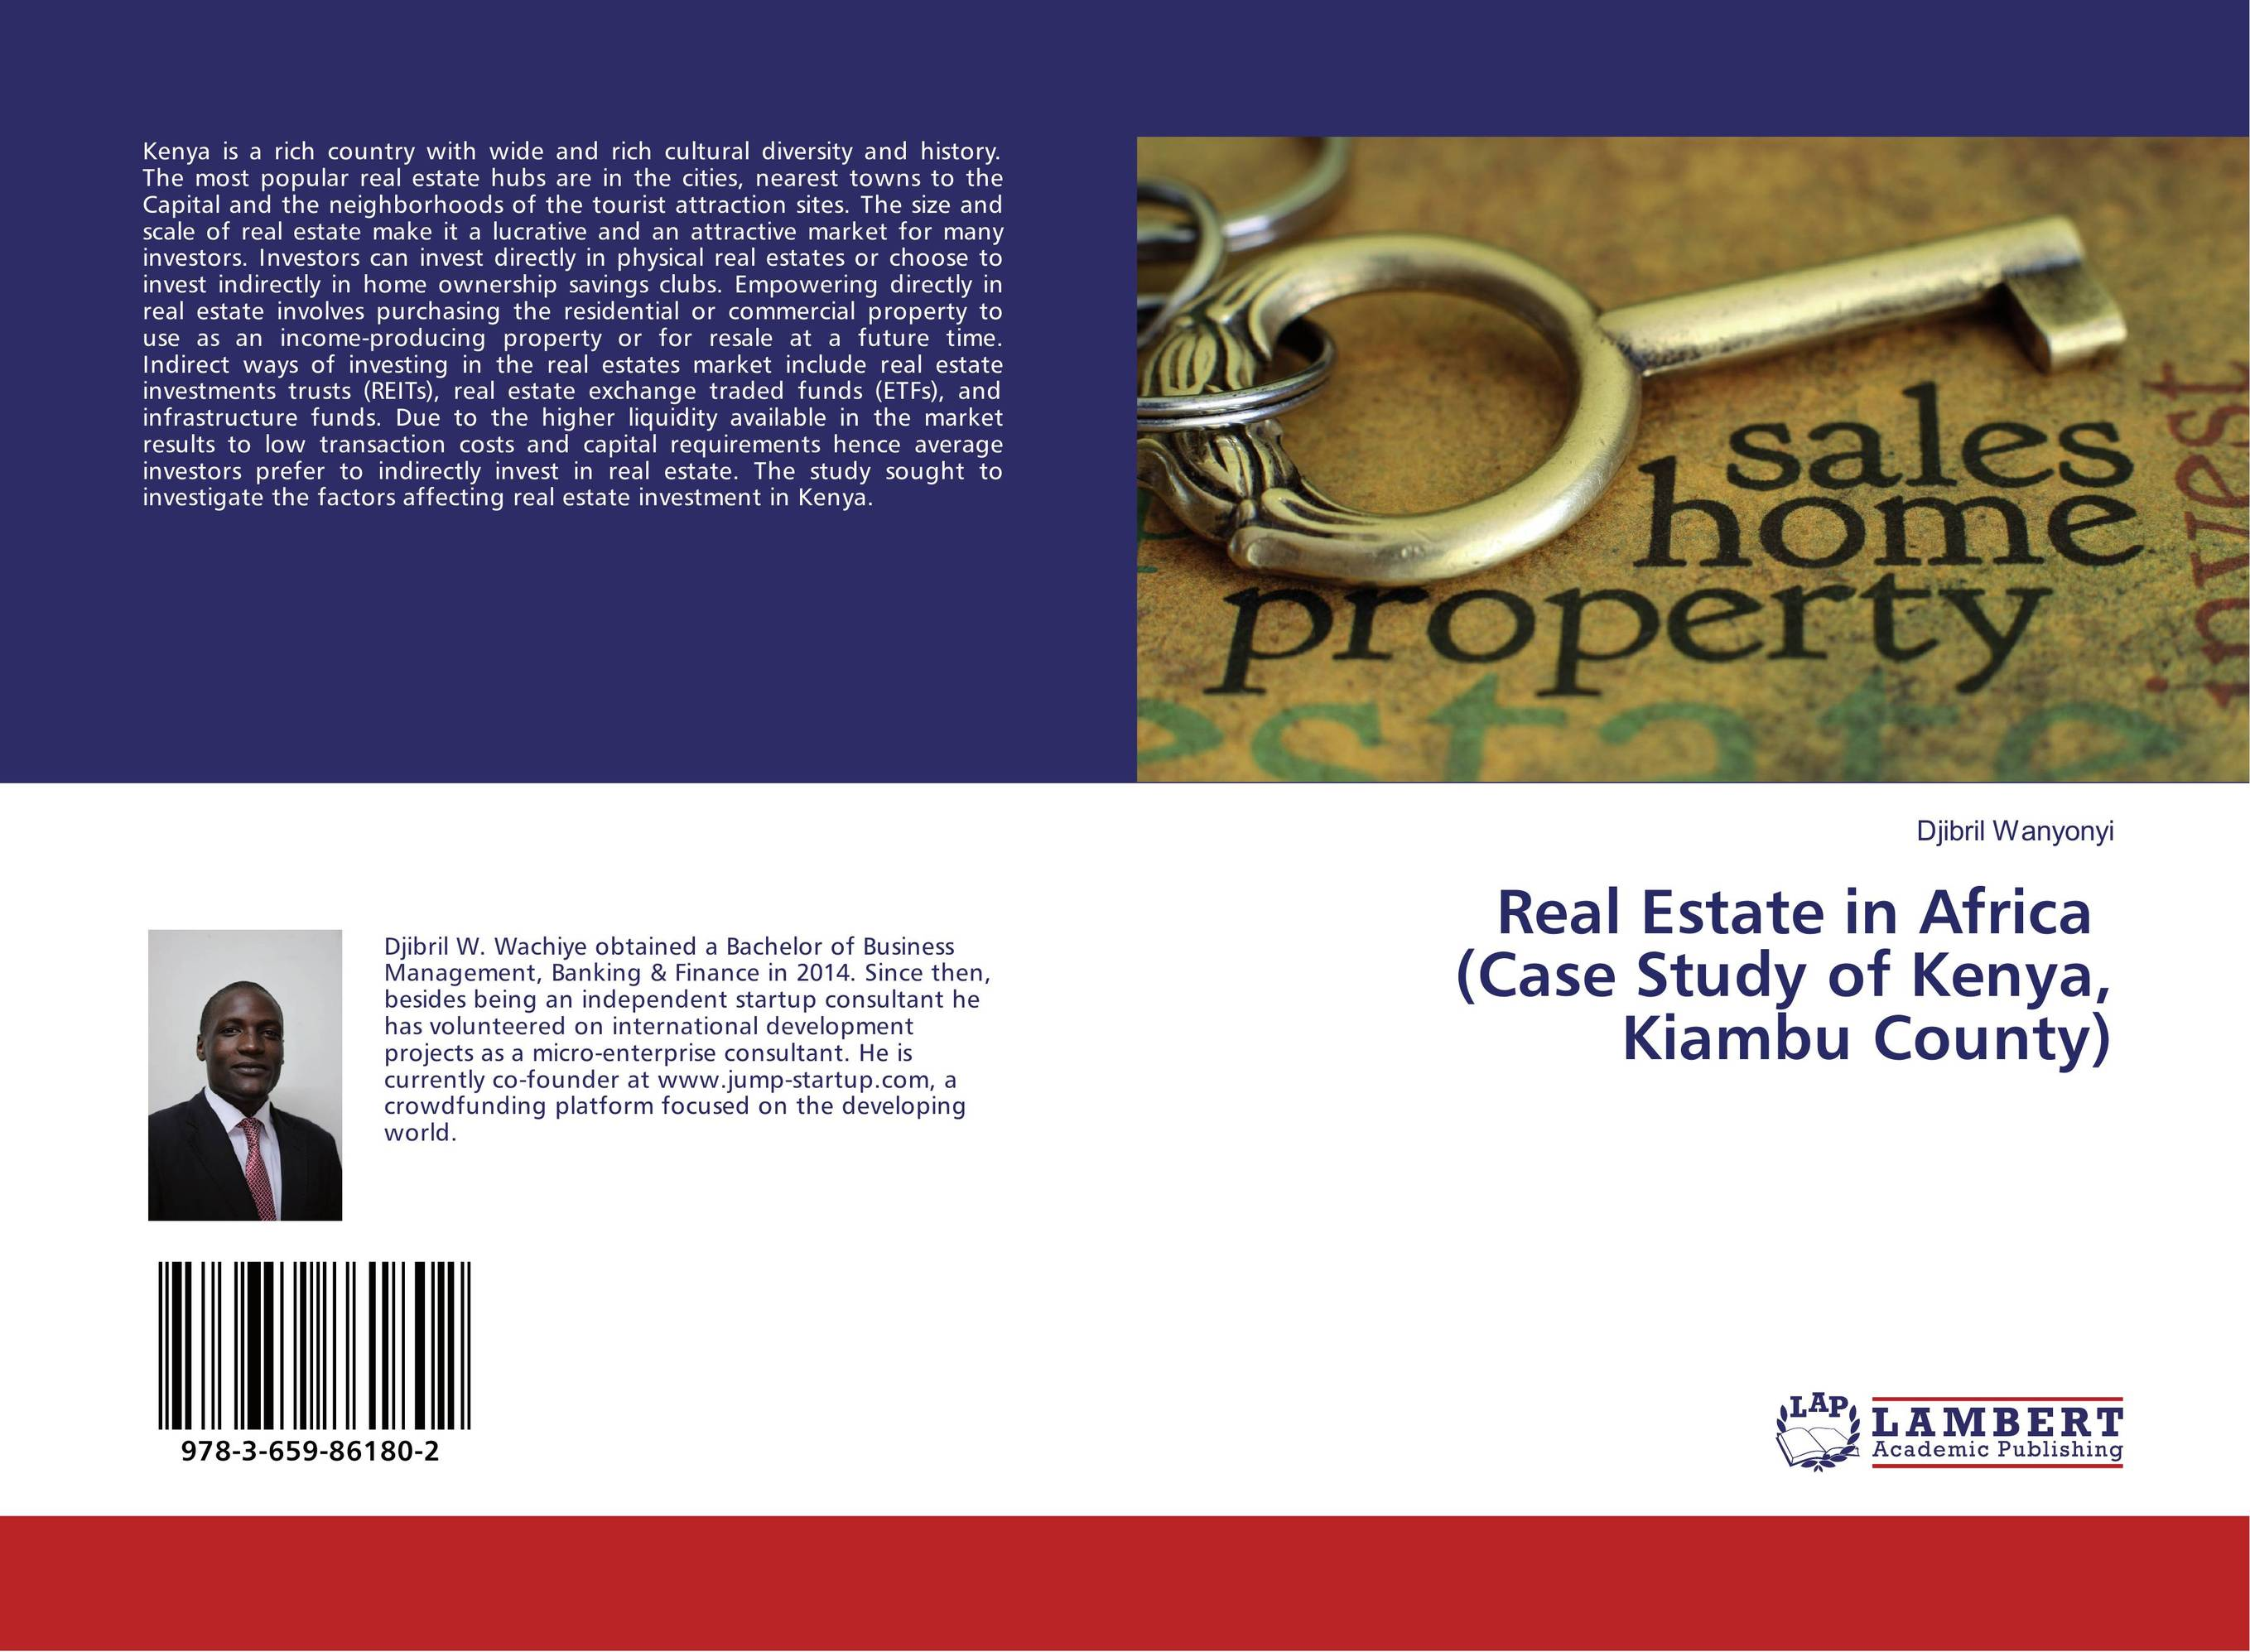 Real Estate in Africa (Case Study of Kenya, Kiambu County) gary grabel wealth opportunities in commercial real estate management financing and marketing of investment properties